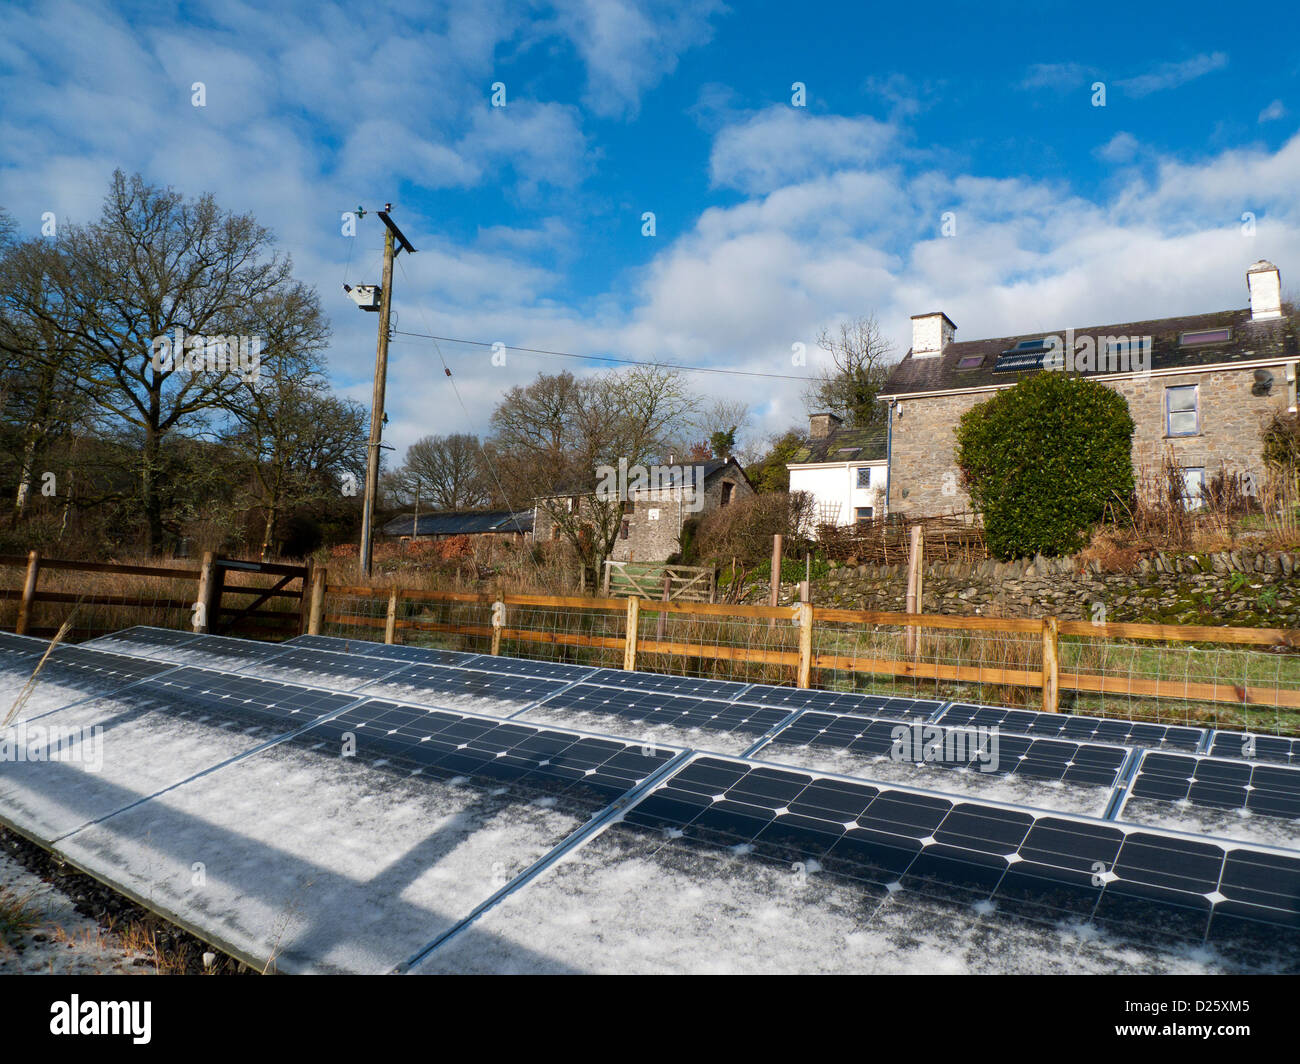 Free standing photovoltaic solar panels on smallholding land in West Wales, UK - Stock Image